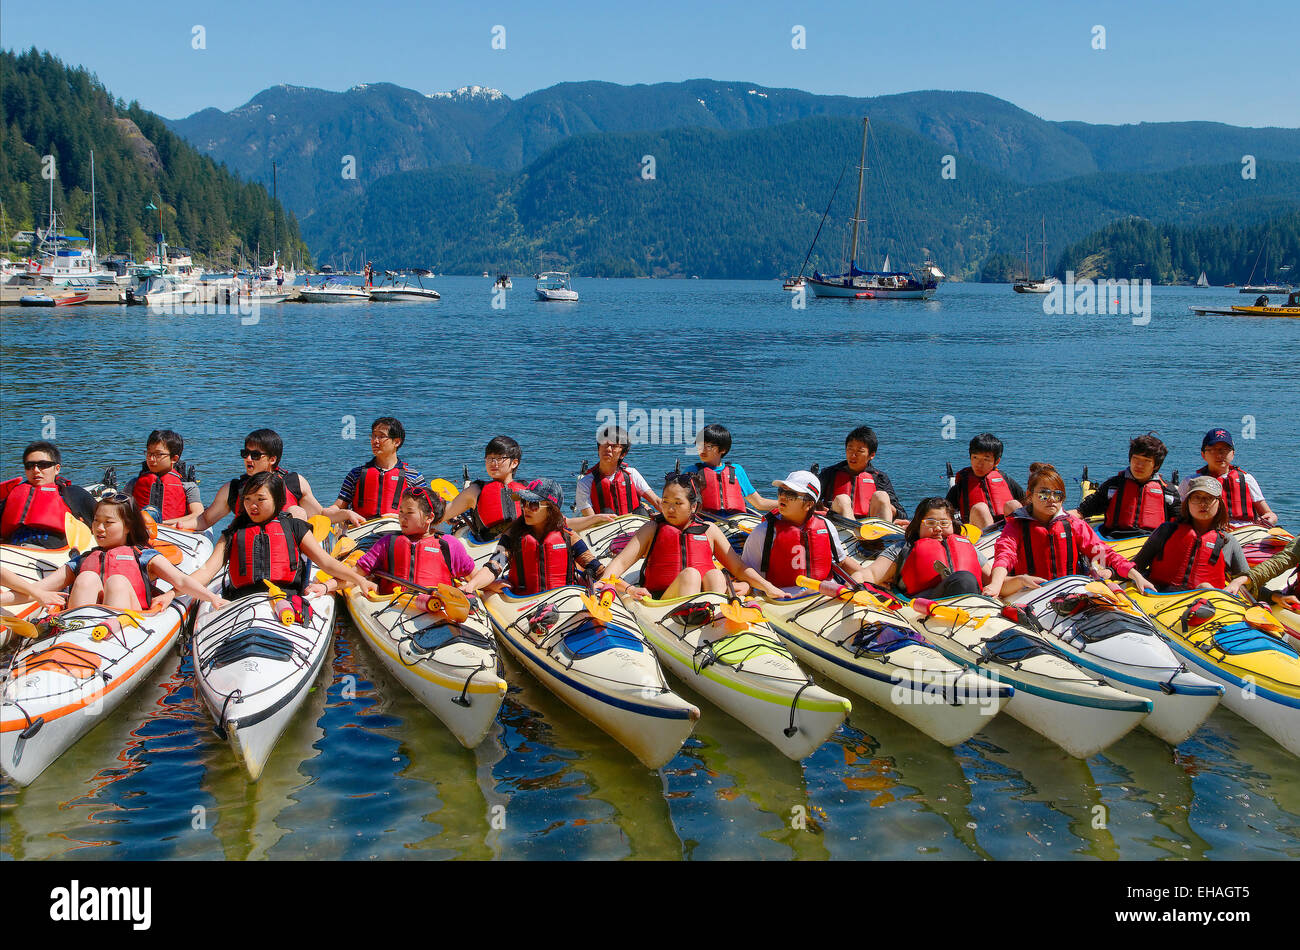 Teen novice kayakers get training , Deep Cove, District of North Vancouver, British Columbia, Canada - Stock Image